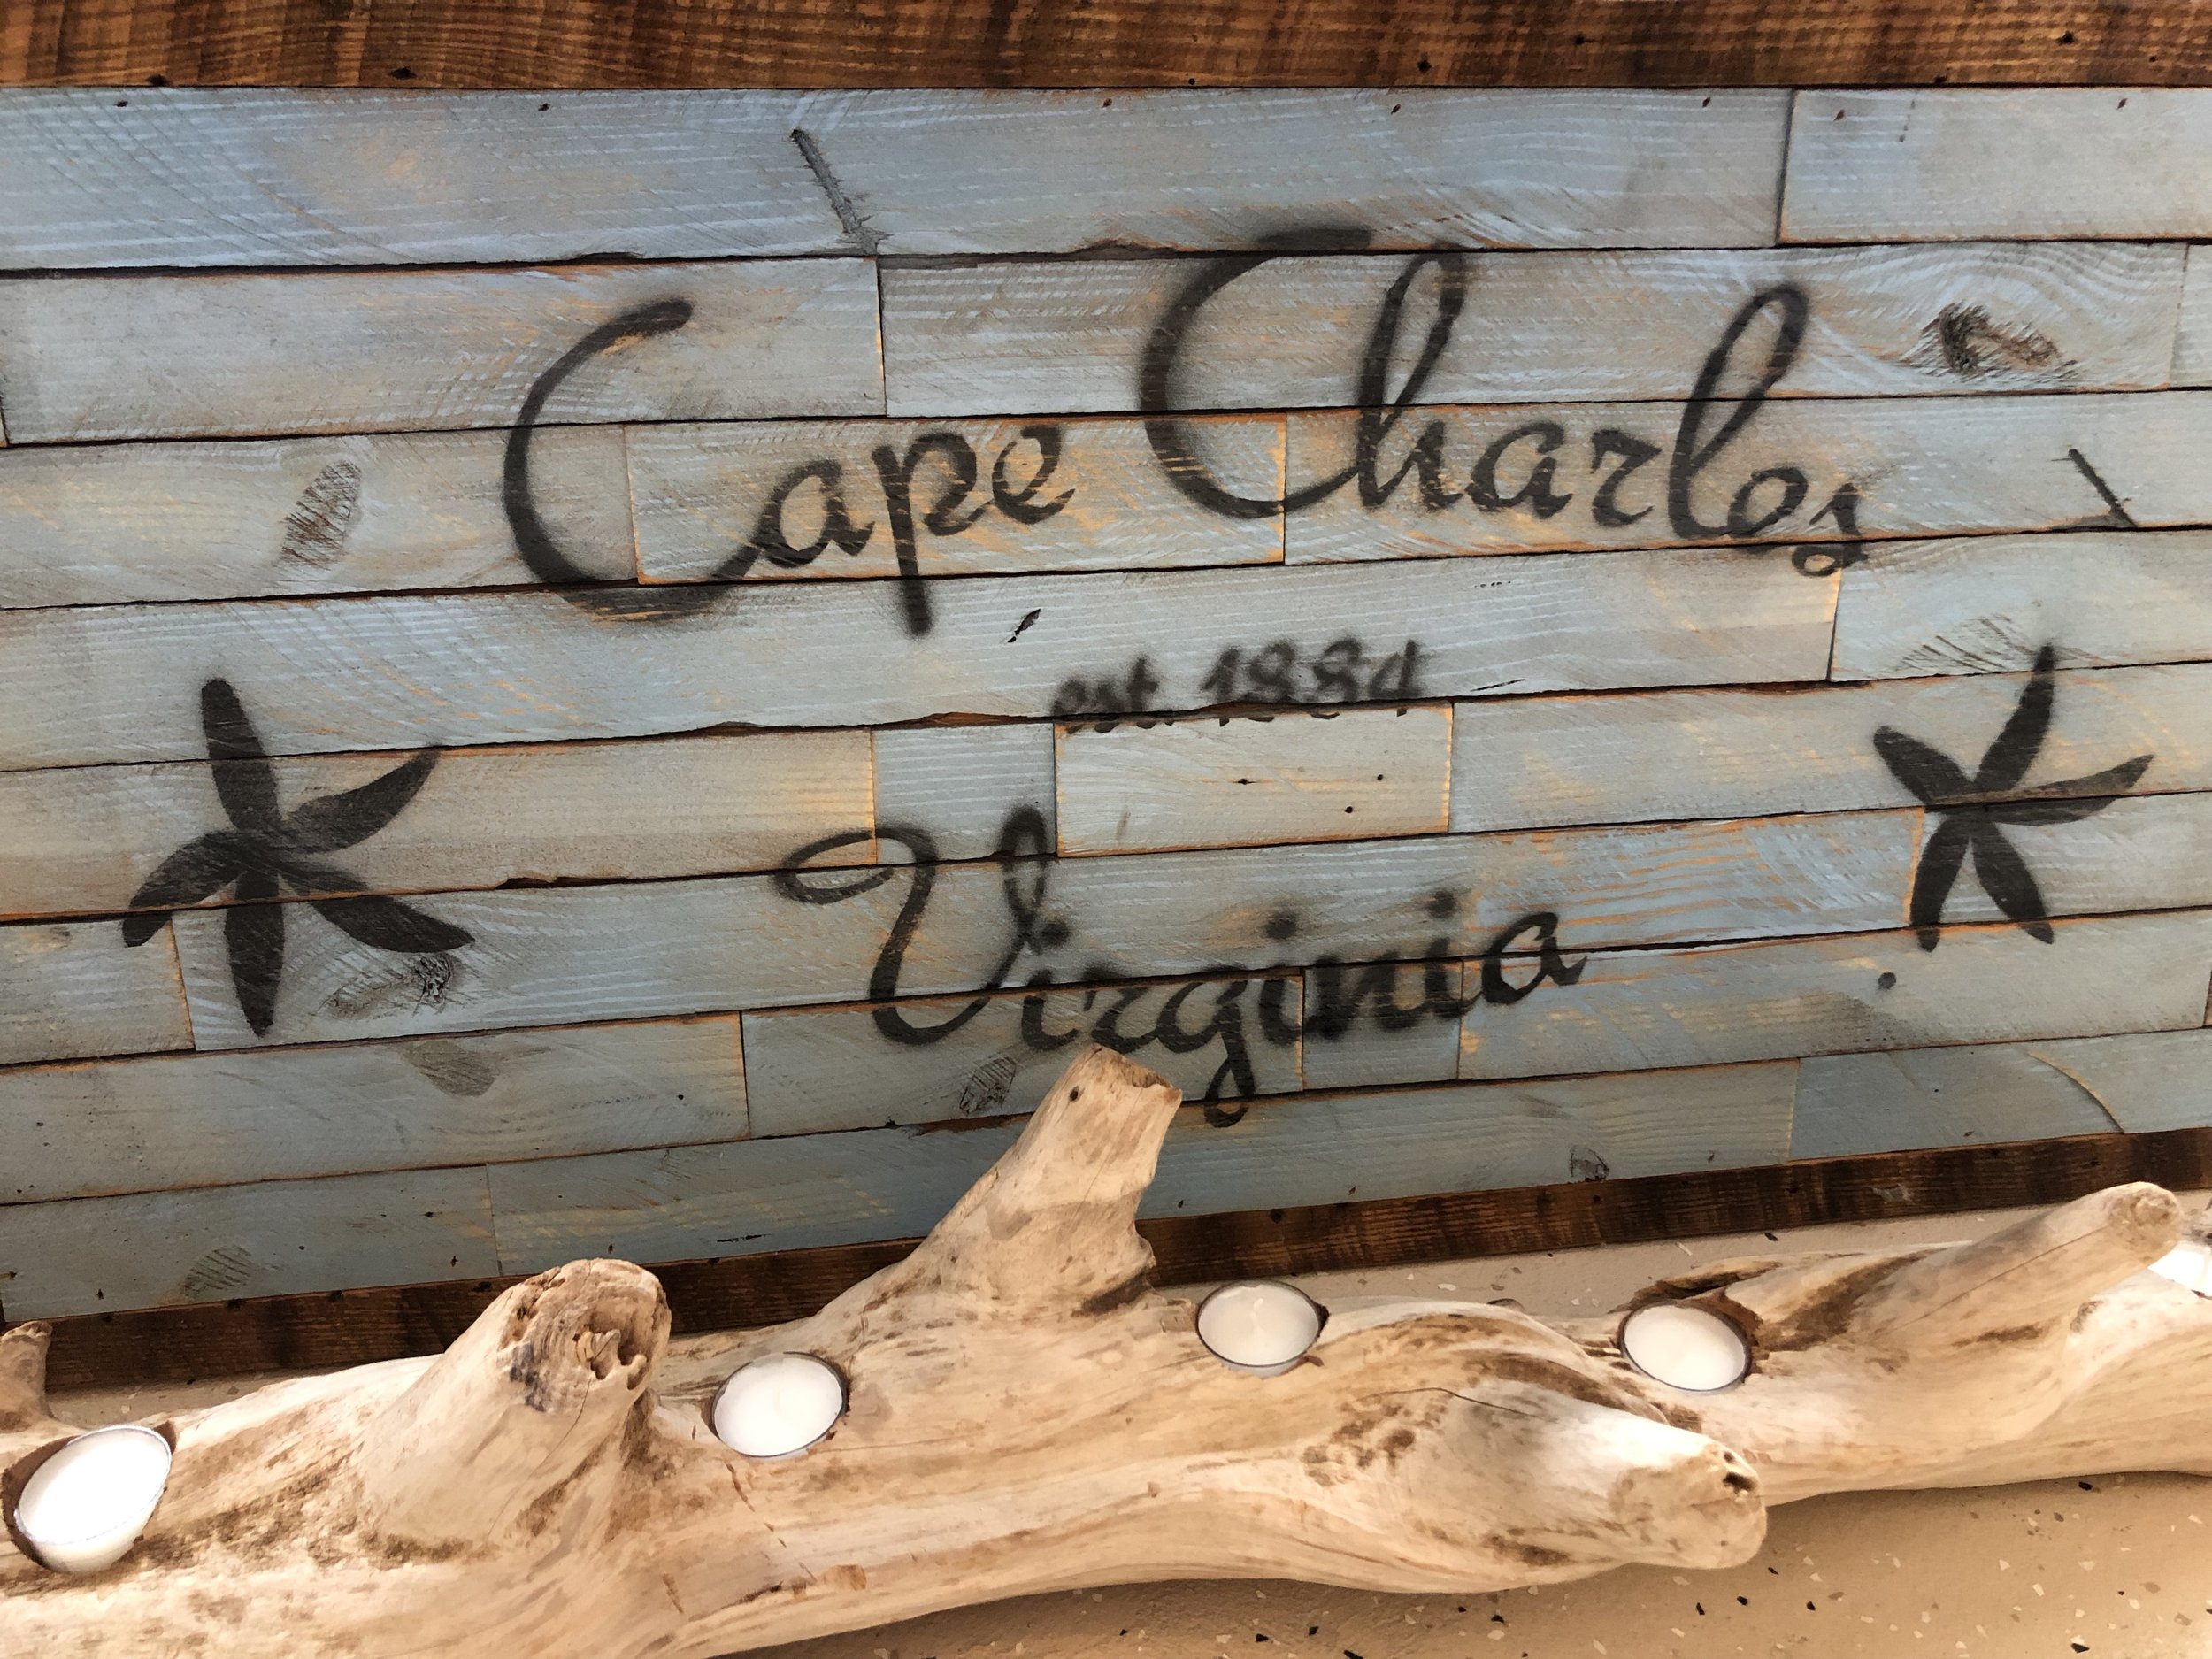 Driftwood Creations by Mike Celli - Local Driftwood & Reclaimed Wood placed together to create one of a kind Home Decor.